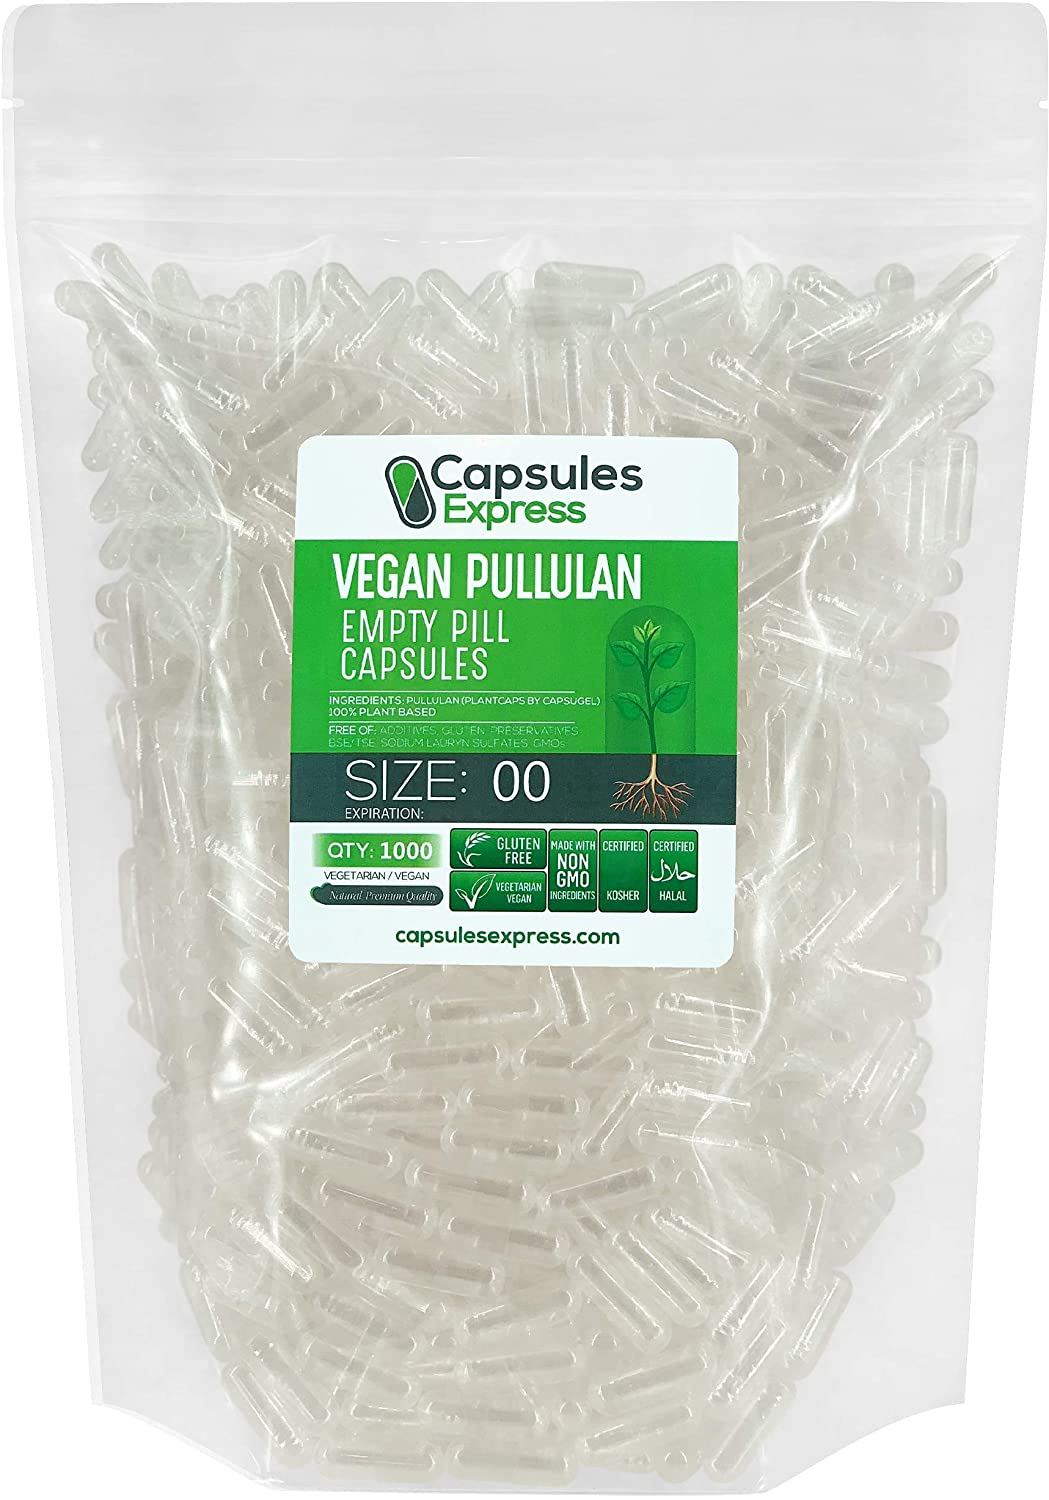 Capsules Express - Size 00 Plantcaps Clear Empty Vegan Pullulan Capsules Kosher and Halal - Vegetarian/Vegetable Pill Capsule - DIY Powder Filling (1000)